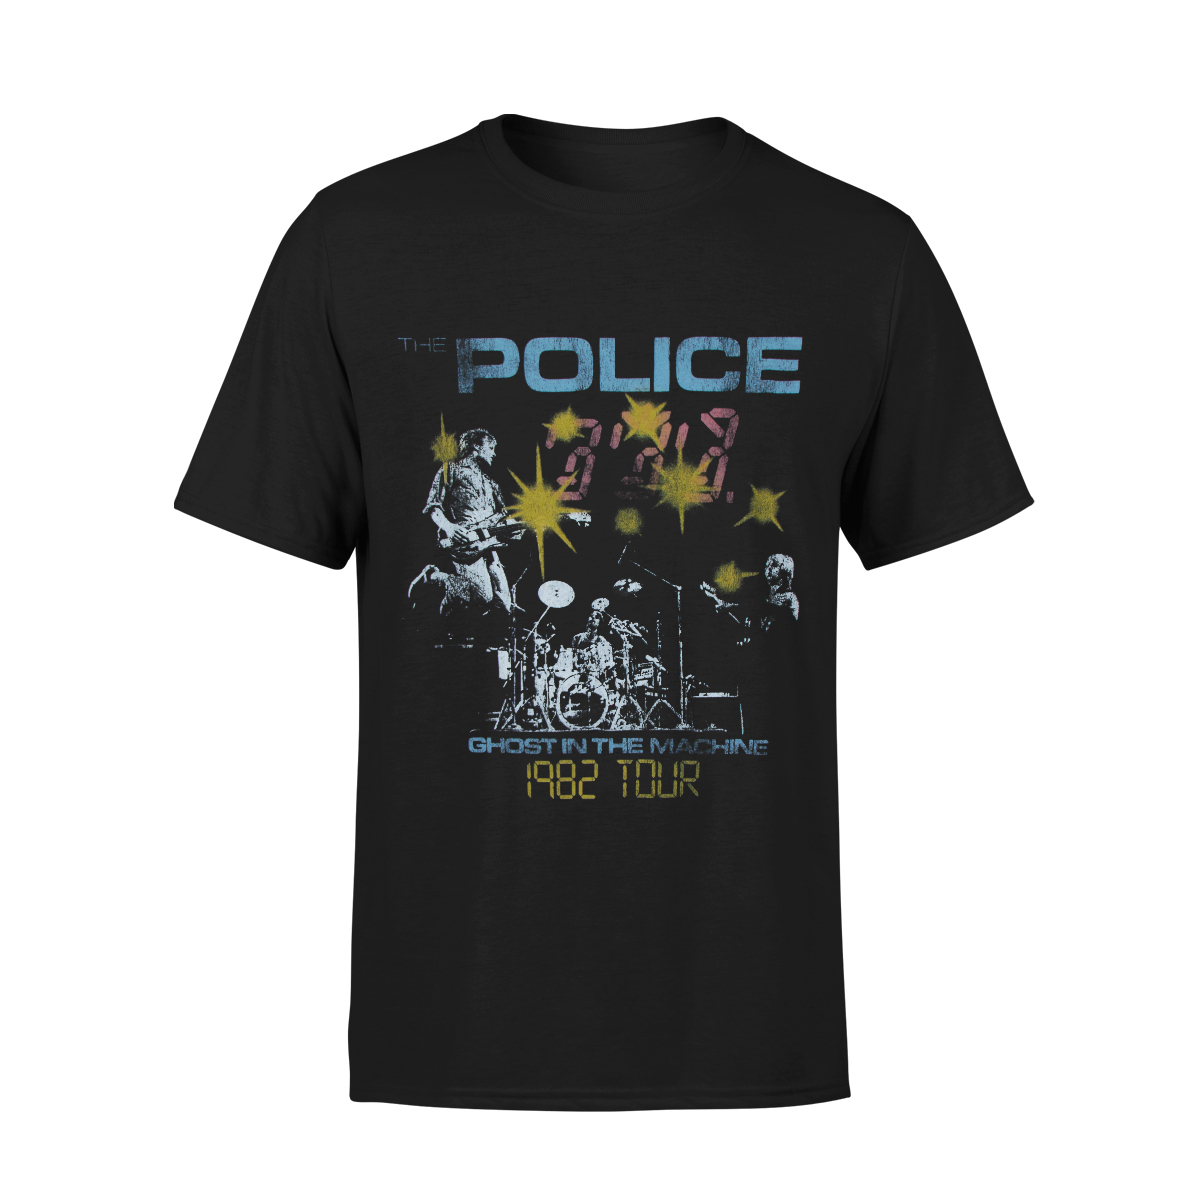 Ghost in the Machine 1982 Tour T-shirt